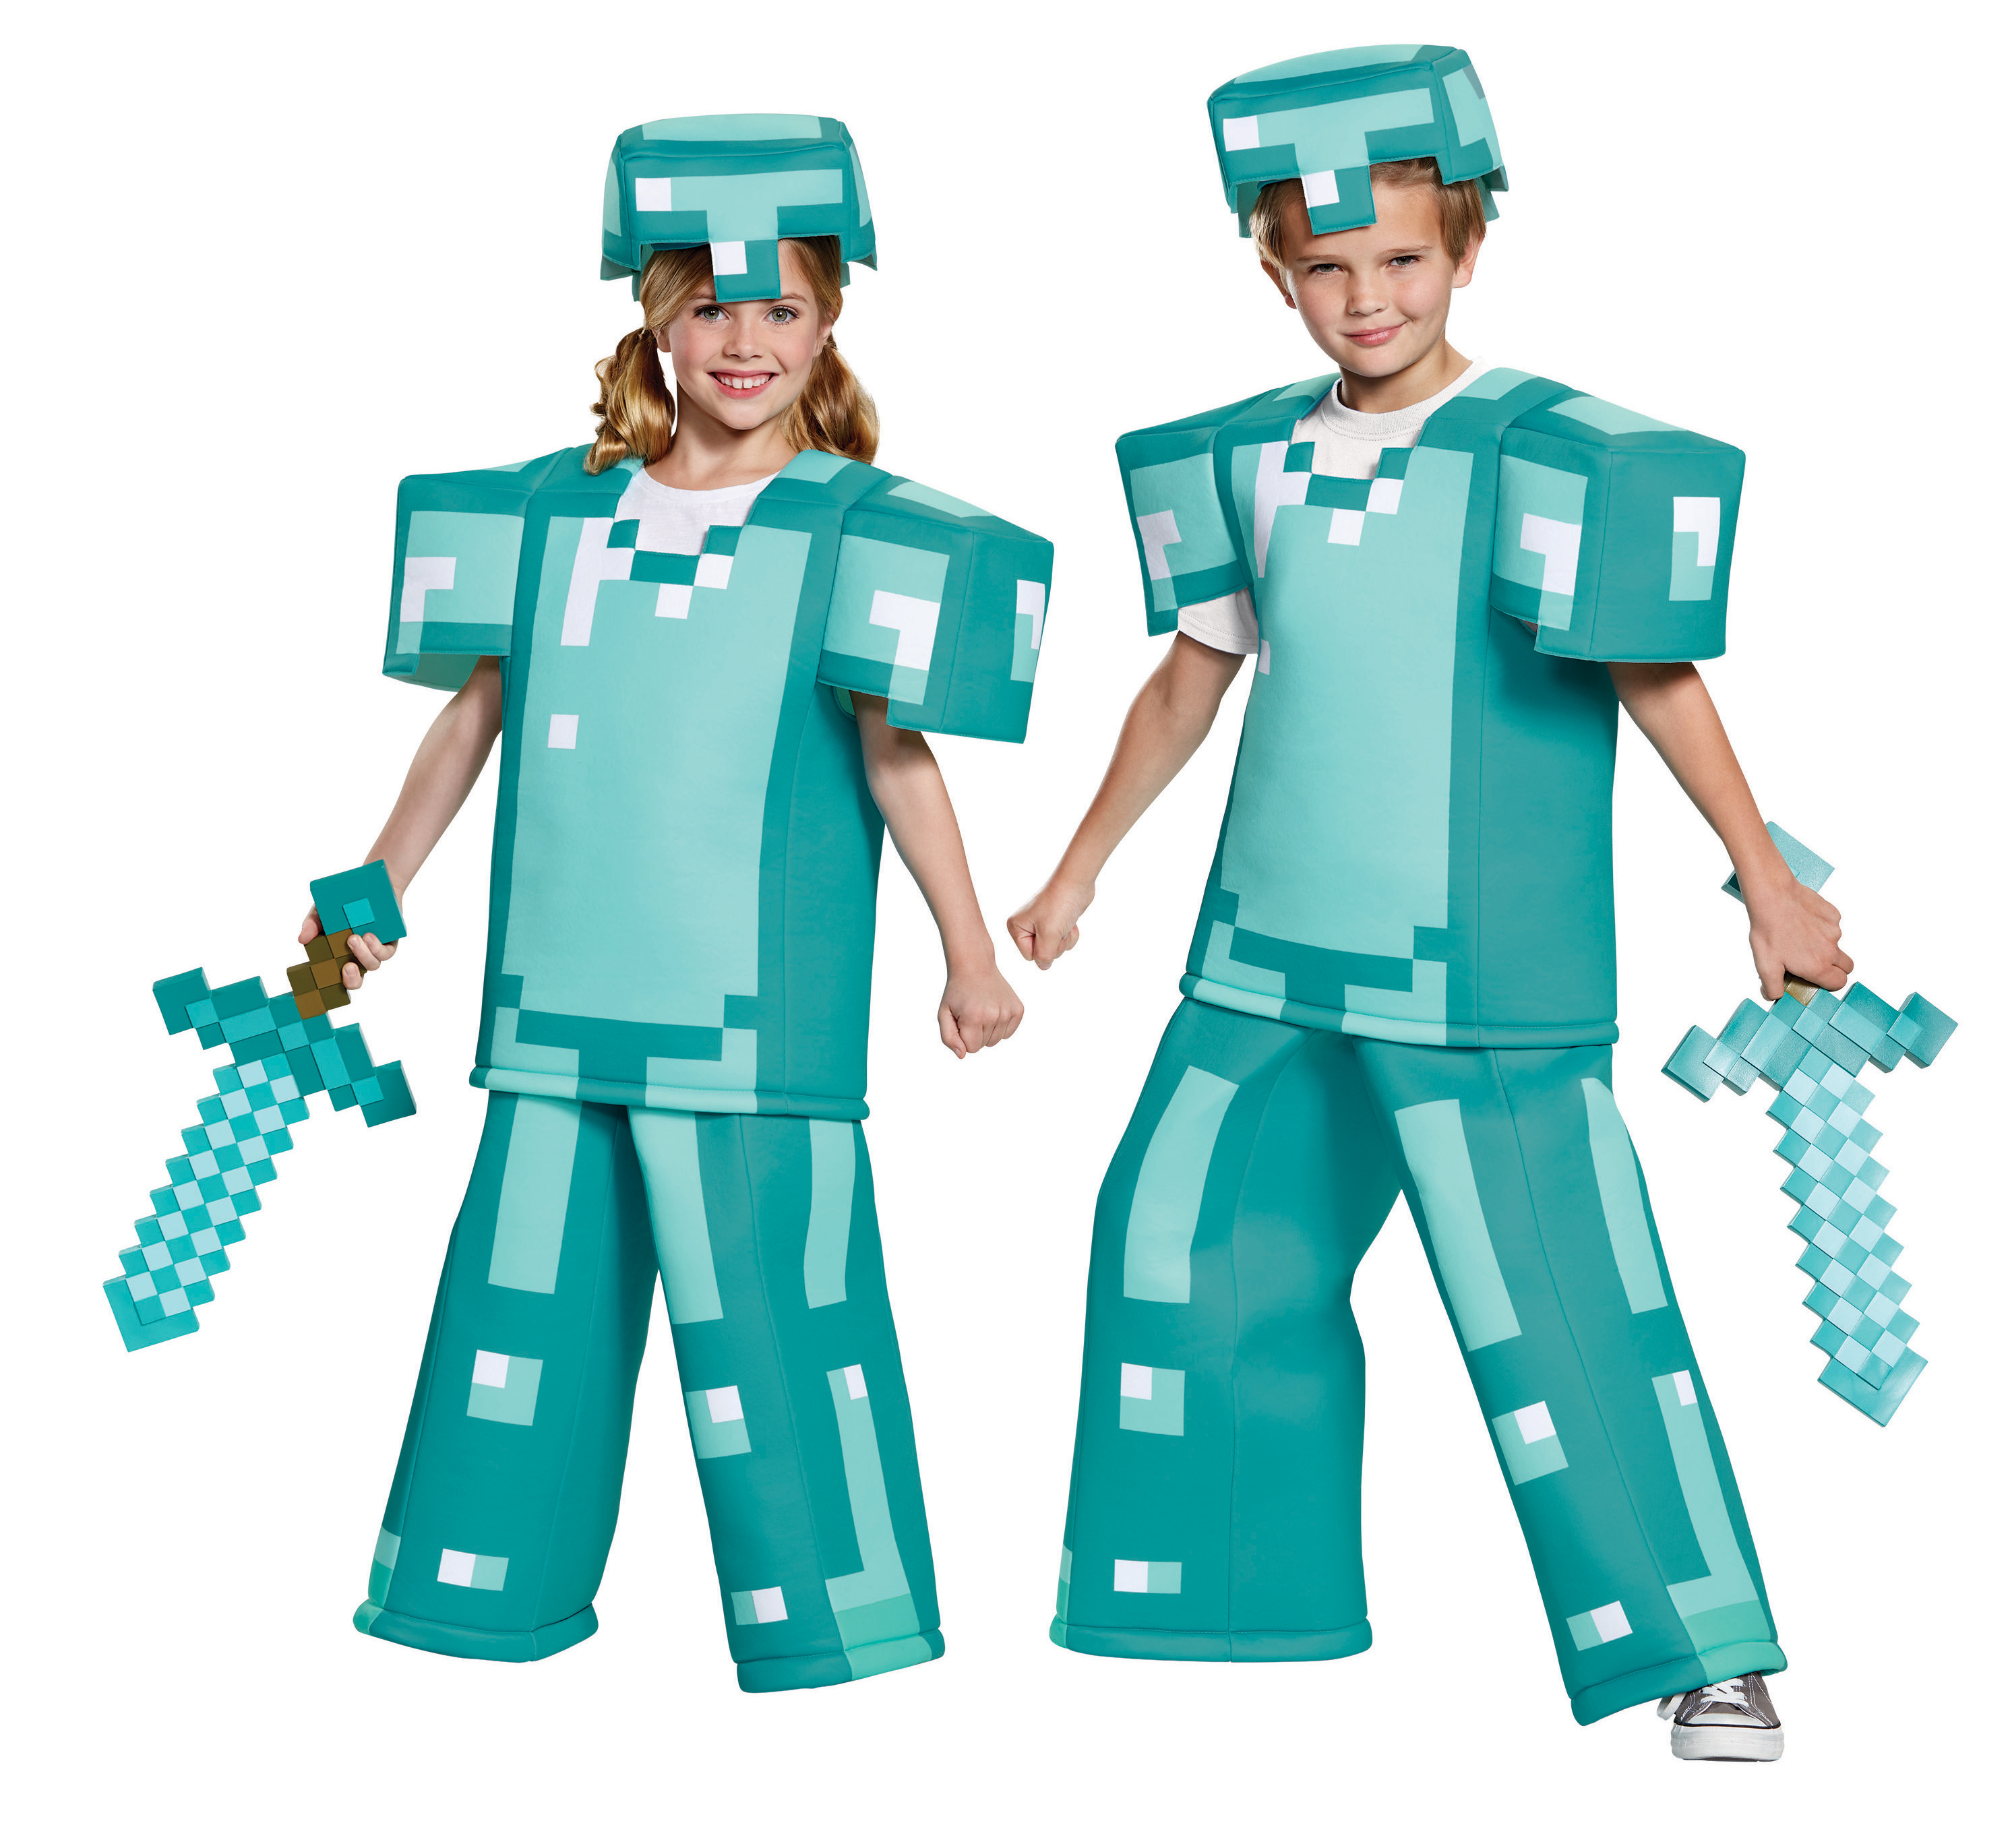 Disguise Brings the Digital Adventures of Minecraft™ to Life with First Ever Minecraft™ Halloween Costumes | Business Wire  sc 1 st  Business Wire & Disguise Brings the Digital Adventures of Minecraft™ to Life with ...